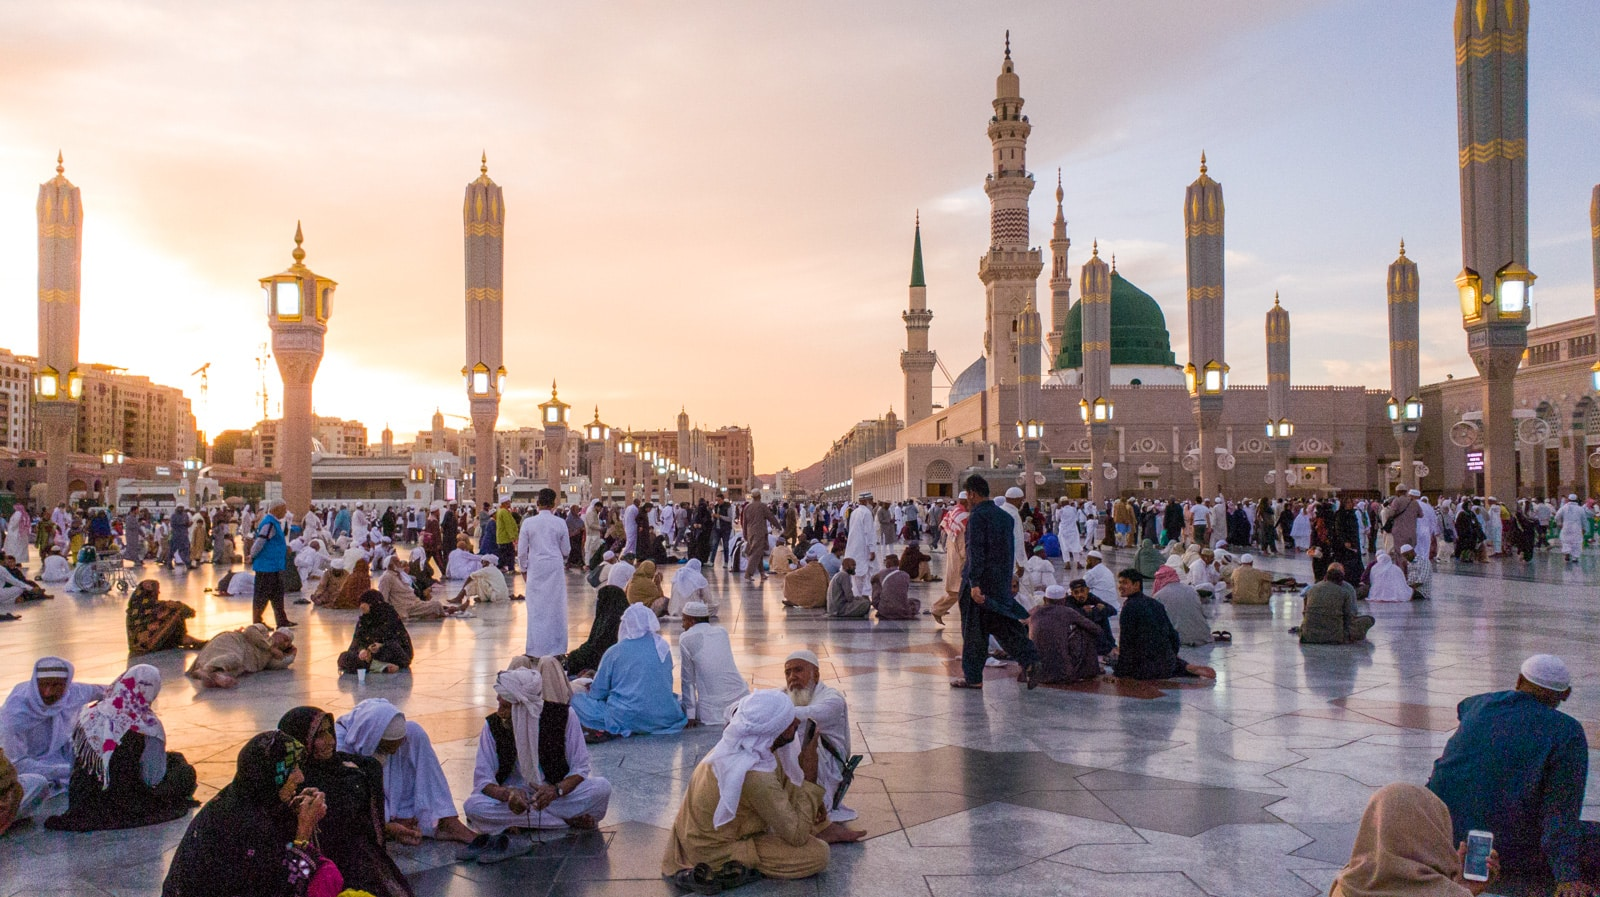 Sunset over Masjid Nabawi, the Prophet's mosque, in Medina, Saudi Arabia